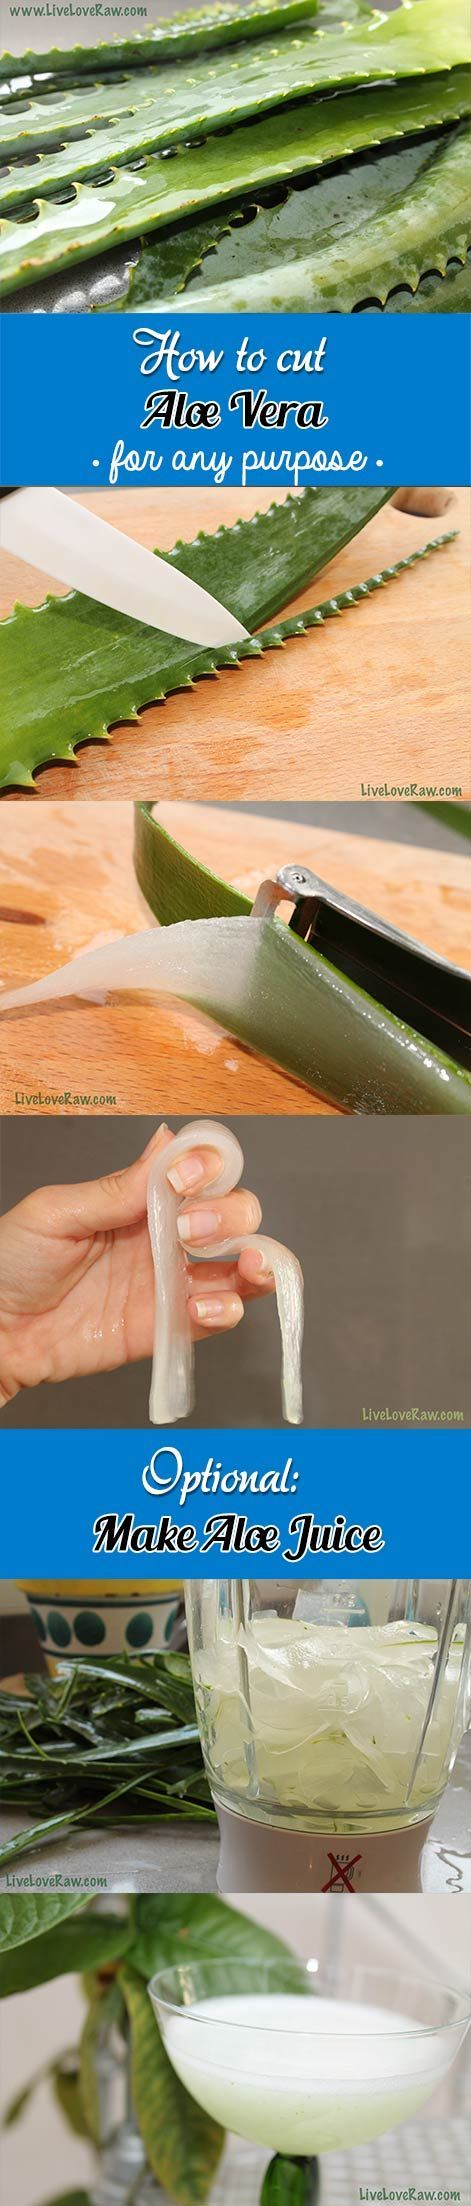 How to cut aloe vera by Live Love Raw: http://www.liveloveraw.com/what-to-do-with-aloe-vera/